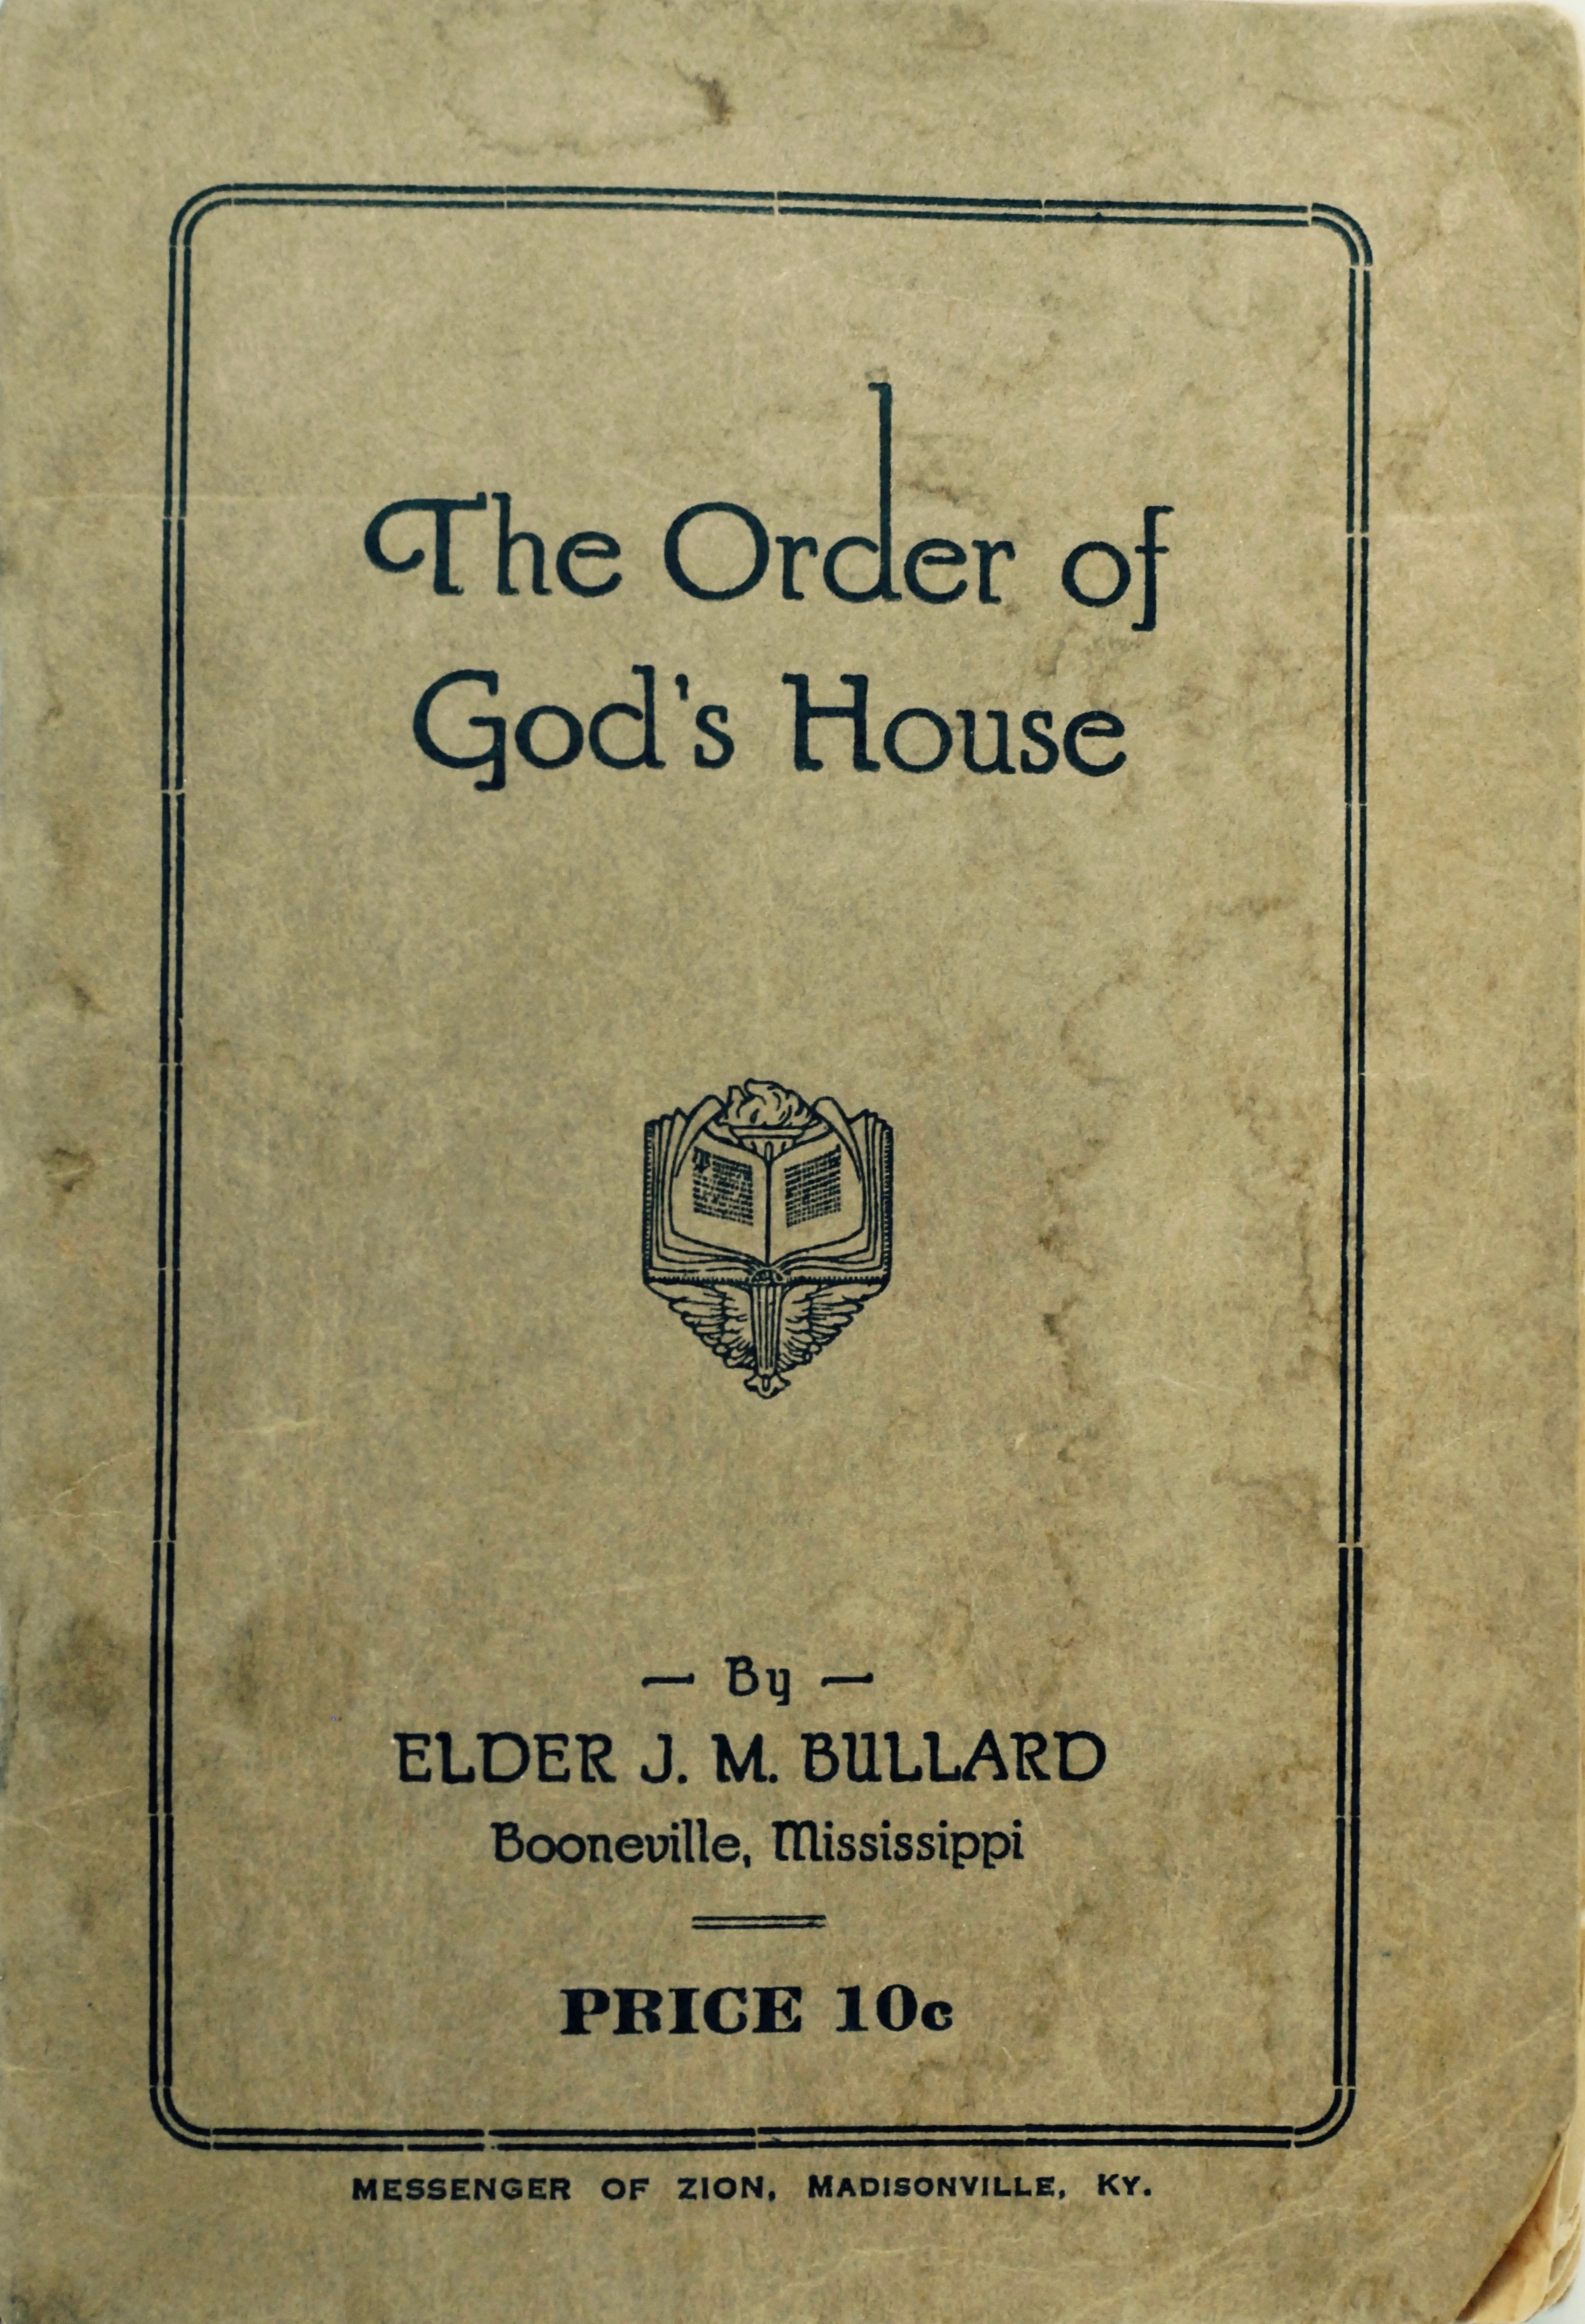 The Order of God's House